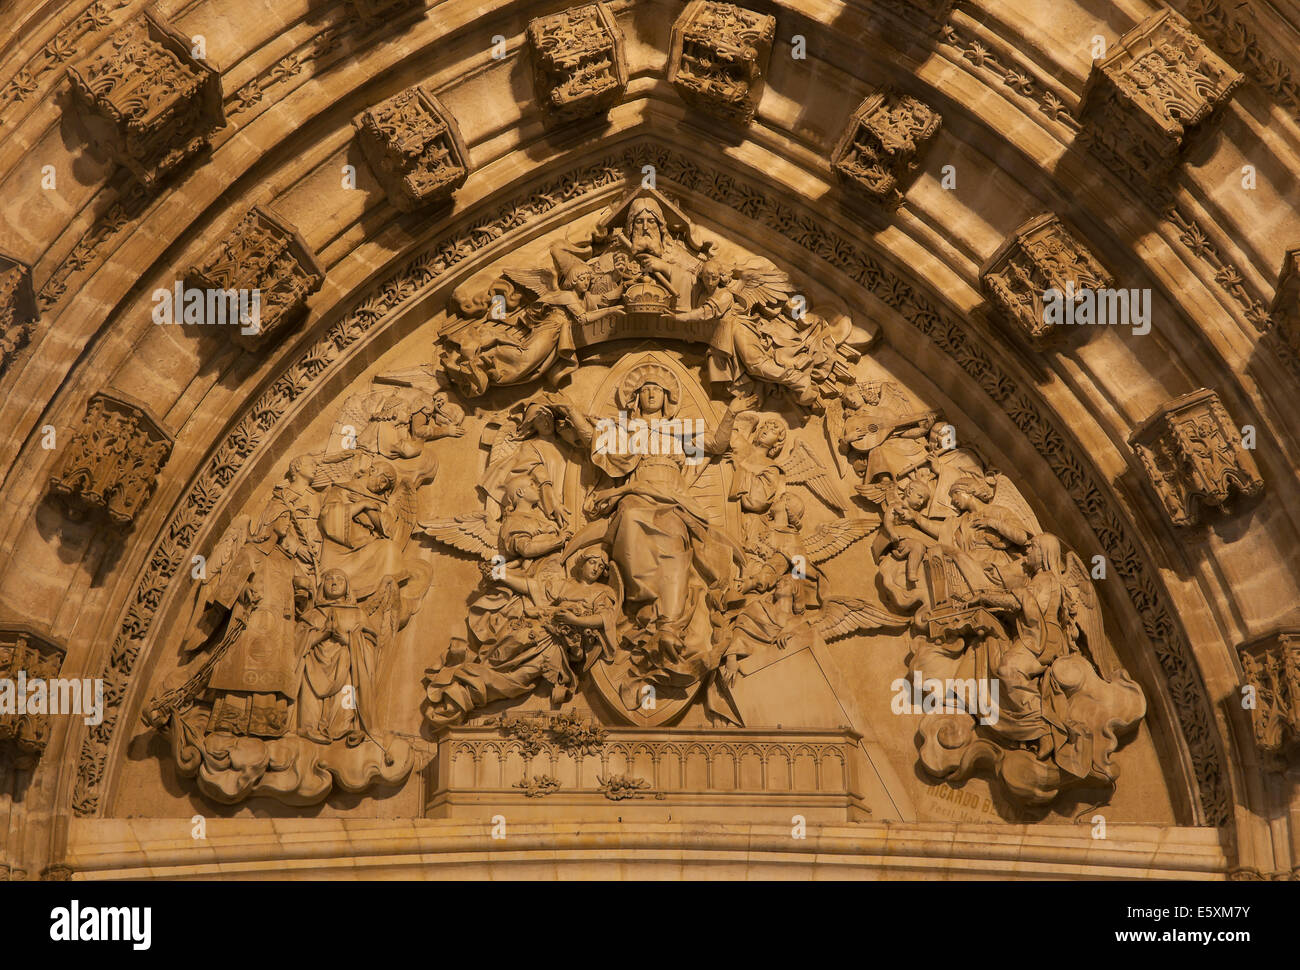 Cathedral - Tympanum of the door of the Assumption, Seville, Region of Andalusia, Spain, Europe - Stock Image